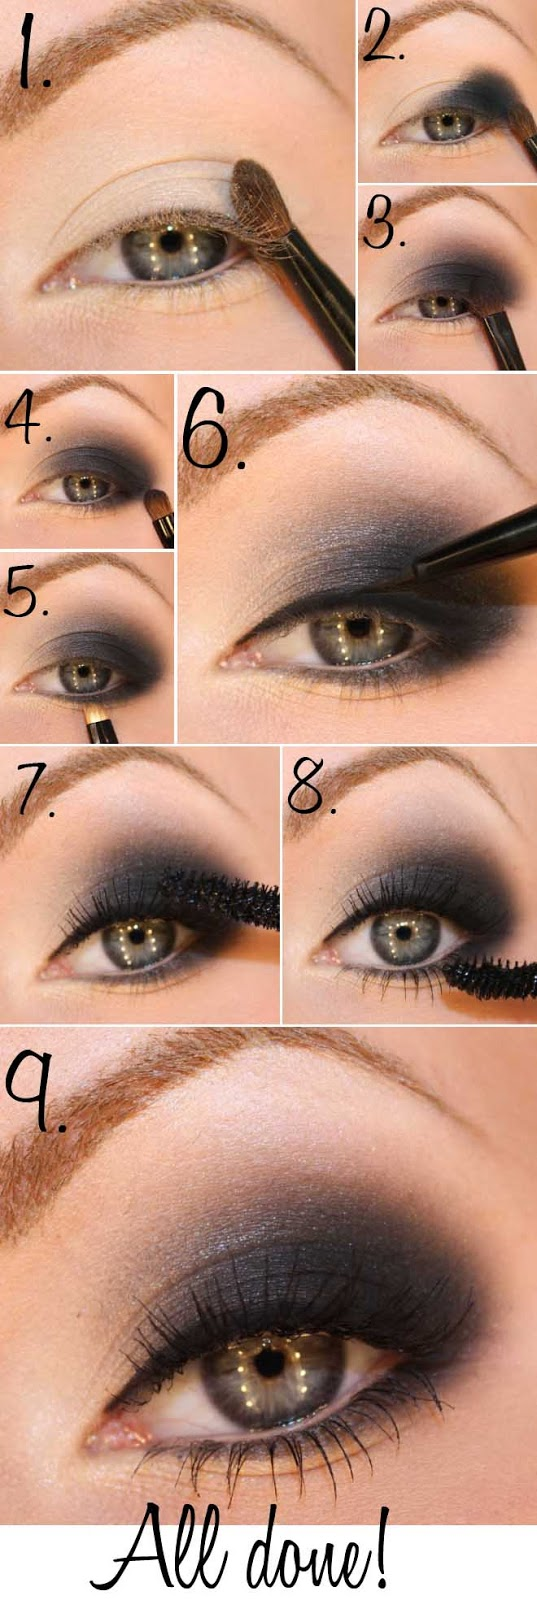 20 breathtaking smokey eye tutorials to look simply irresistible cute diy projects. Black Bedroom Furniture Sets. Home Design Ideas